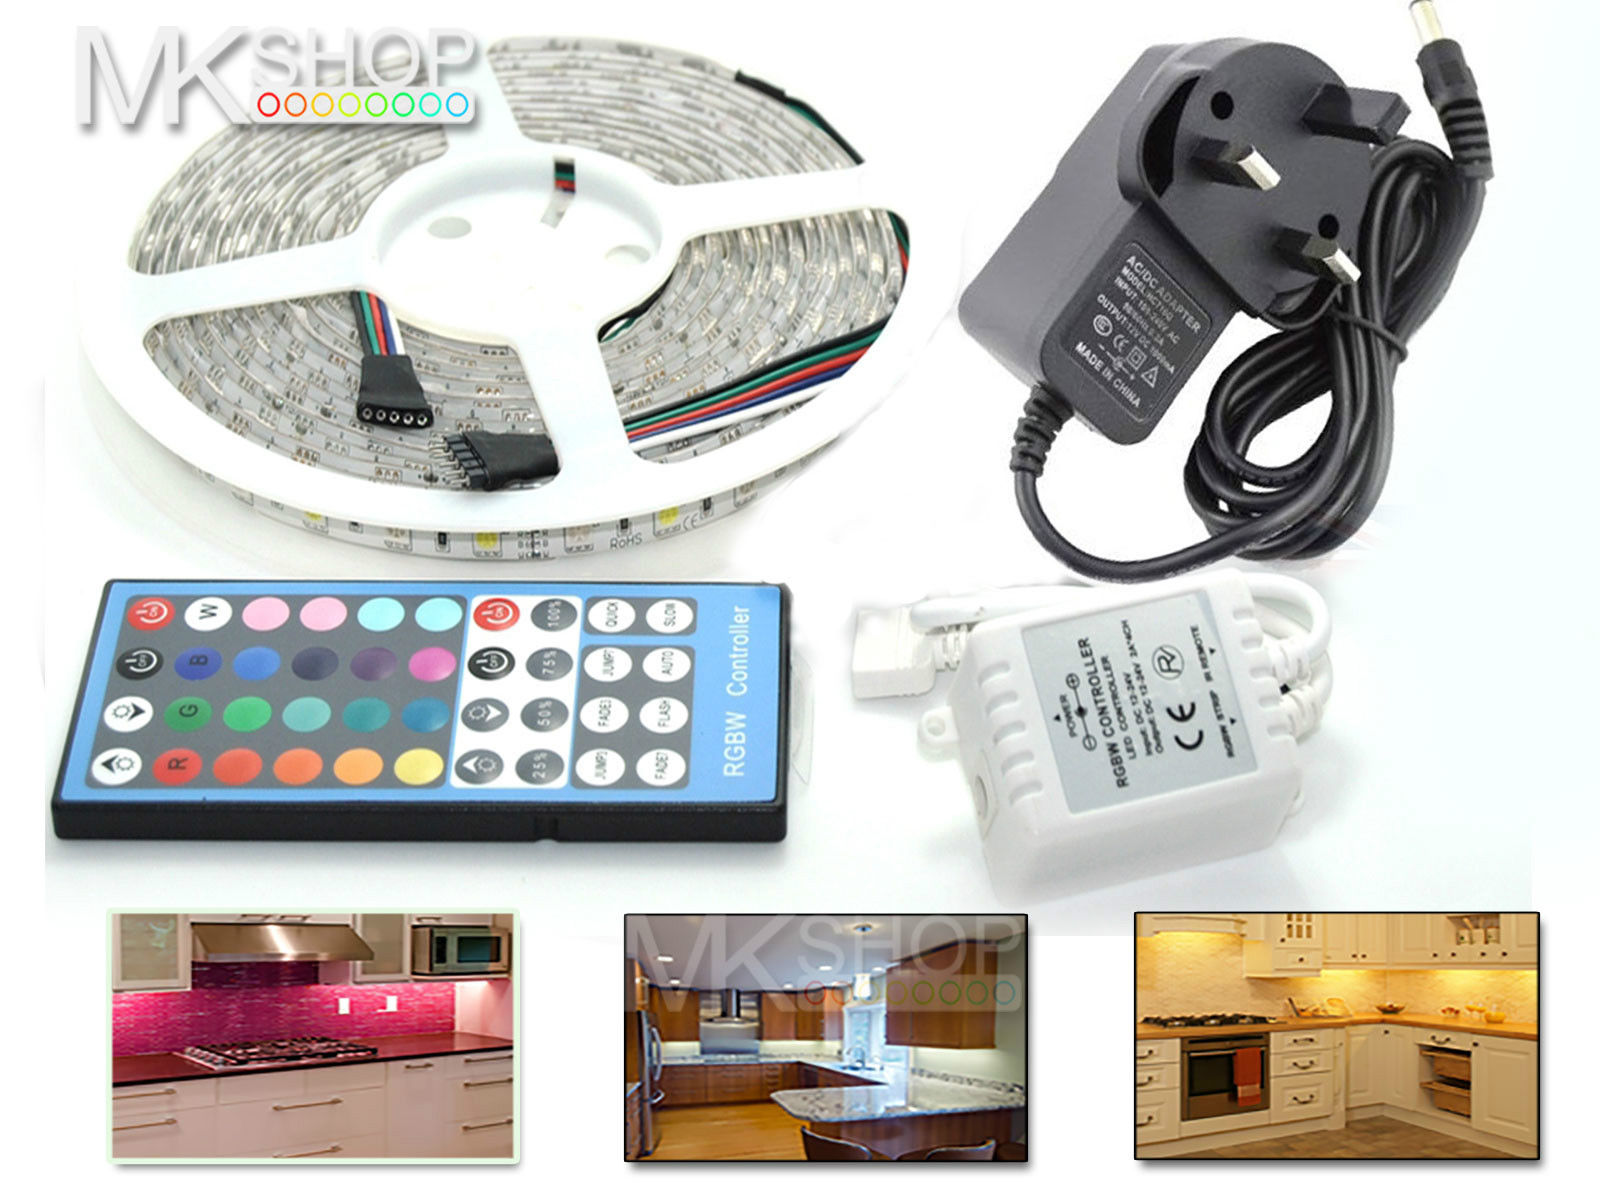 1m 2m 3m 4m 5m 5050 led strip rgbw warm white ip65 home for Kitchen ideas 5m x 3m